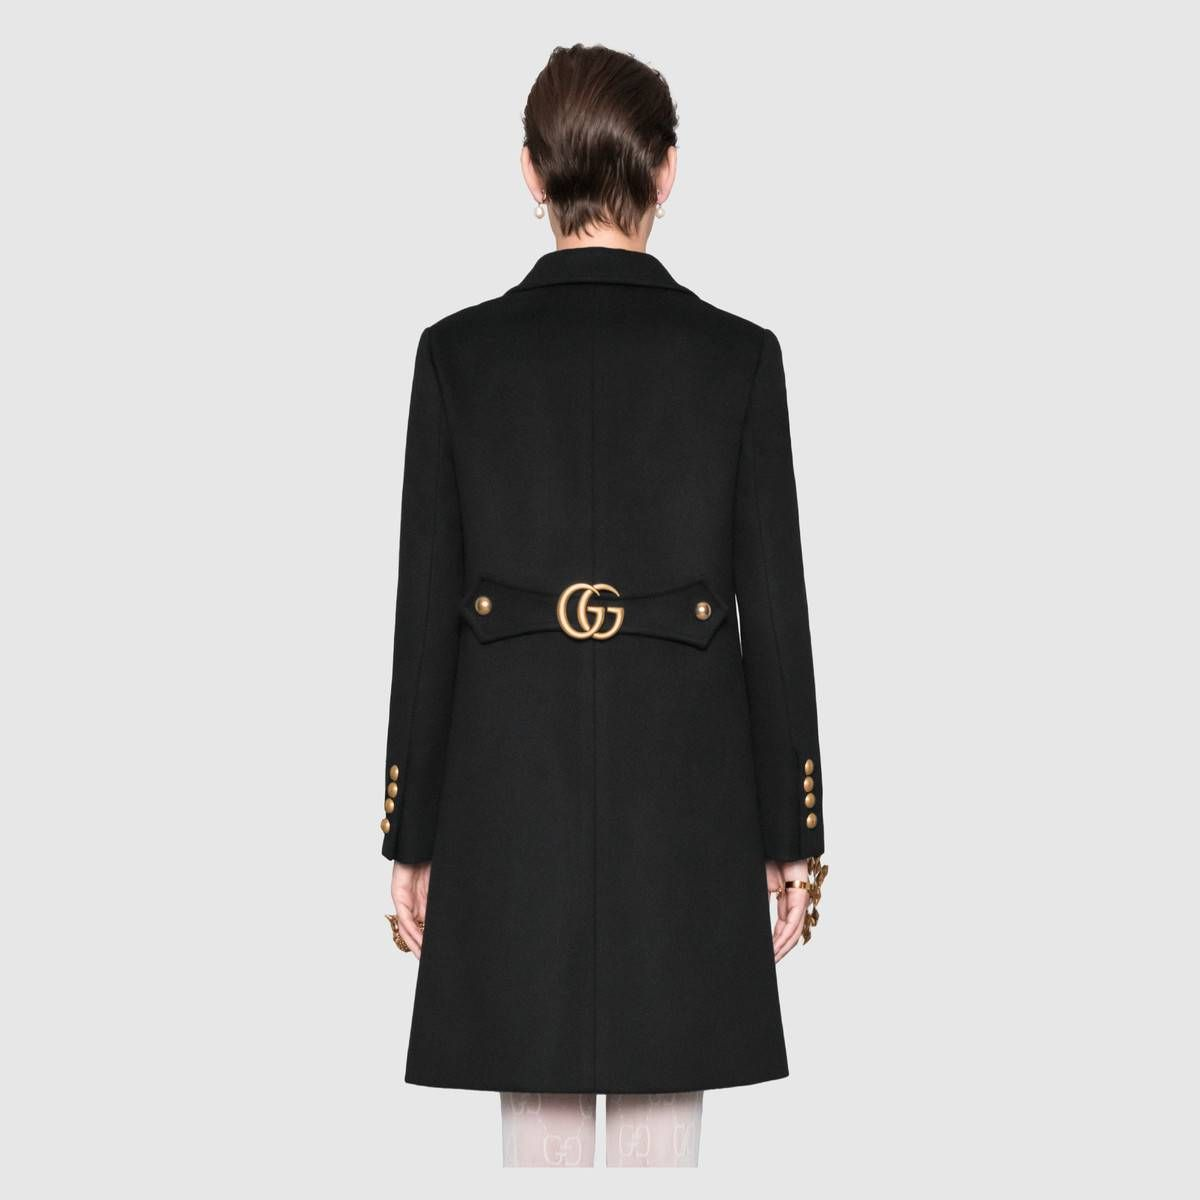 3484a202205 Wool coat with Double G in Black wool